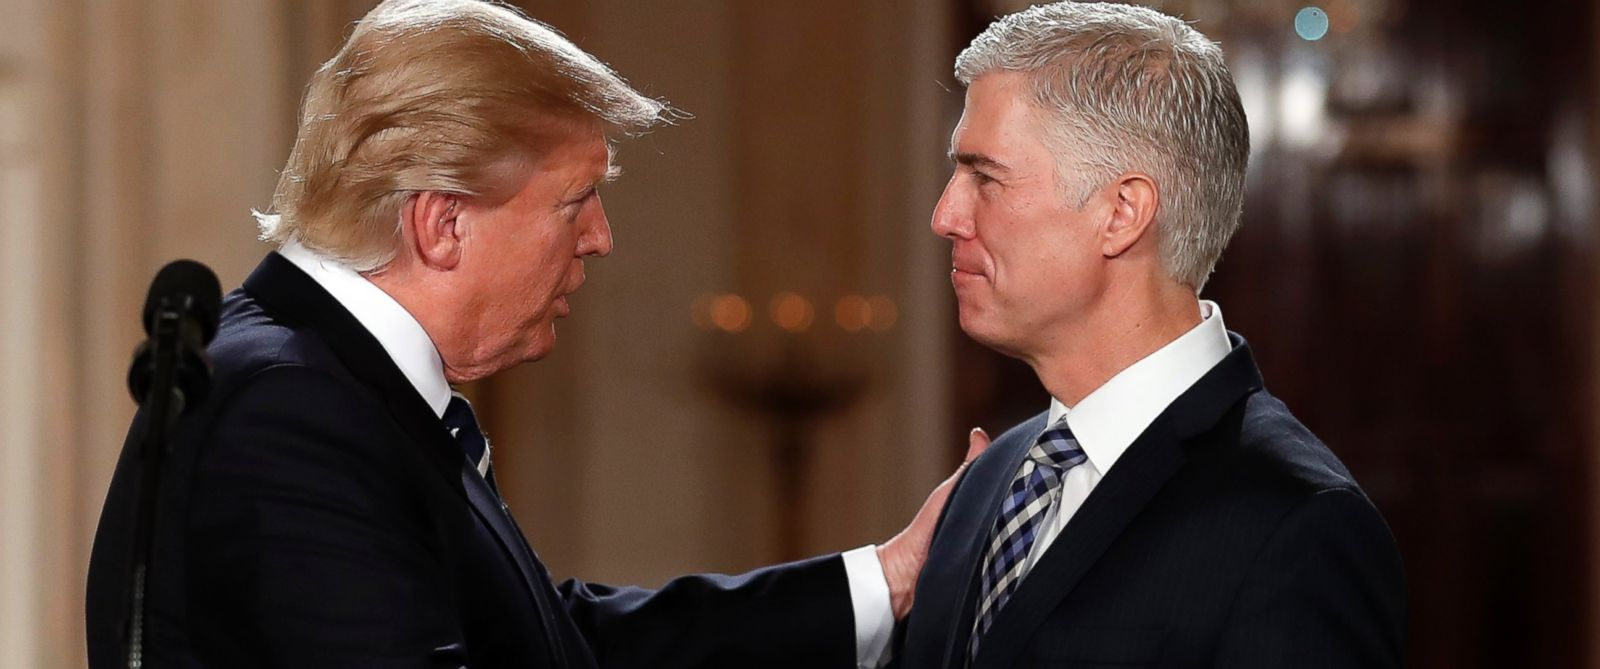 PHOTO: President Donald Trump shakes hands with 10th U.S. Circuit Court of Appeals Judge Neil Gorsuch, his choice for Supreme Court Justices in the East Room of the White House in Washington, Jan. 31, 2017.